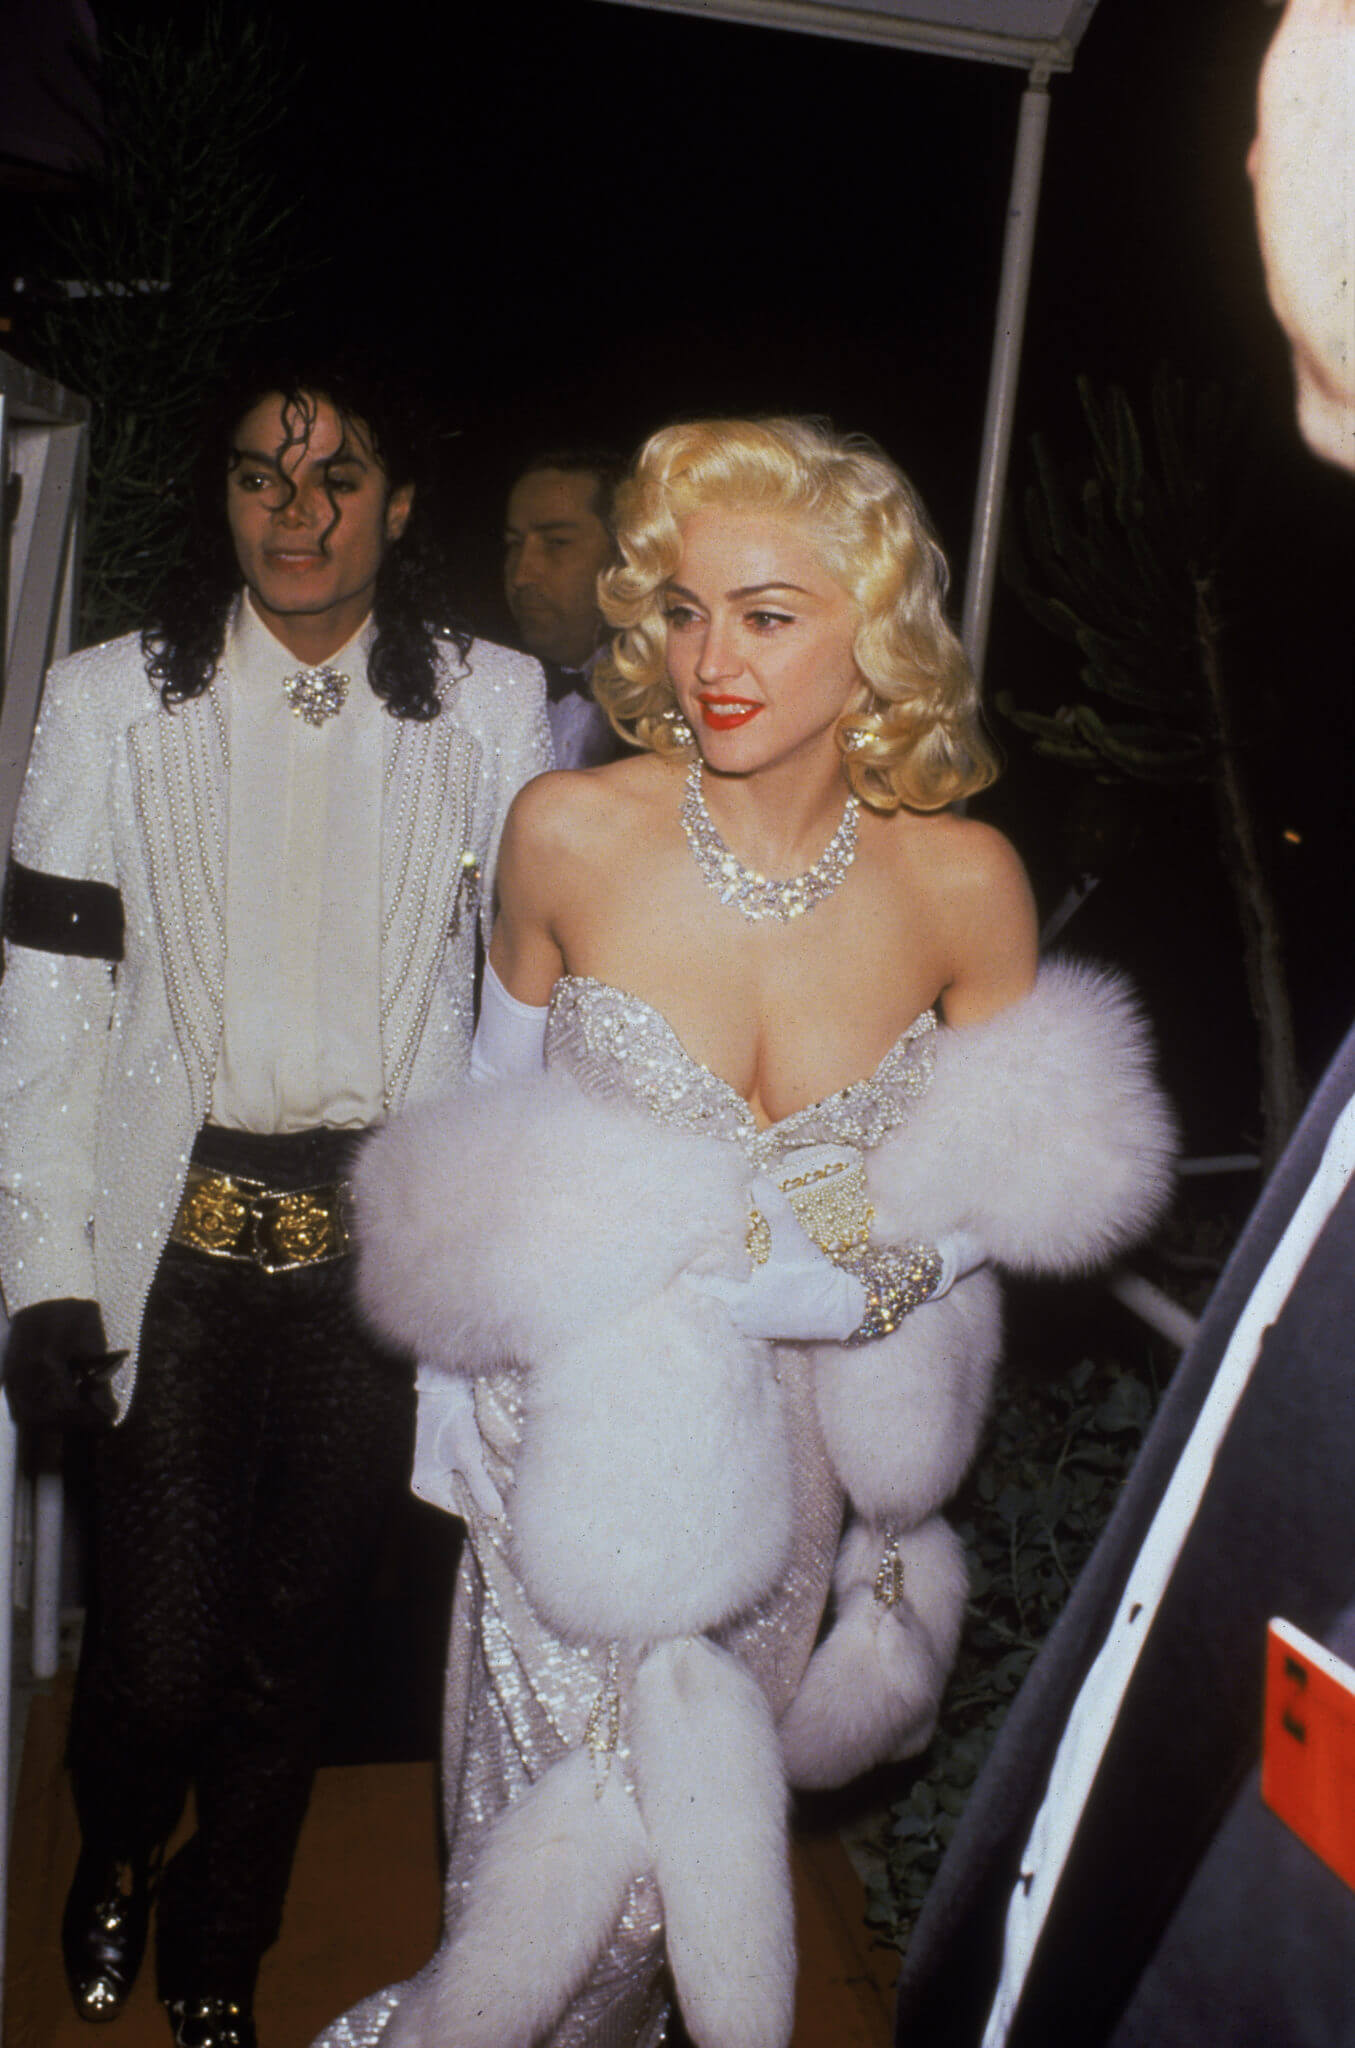 Micheal Jackson y Madonna en los Oscar de 1991. Fotografía: David McGough/DMI/Time & Life Pictures/Getty Images